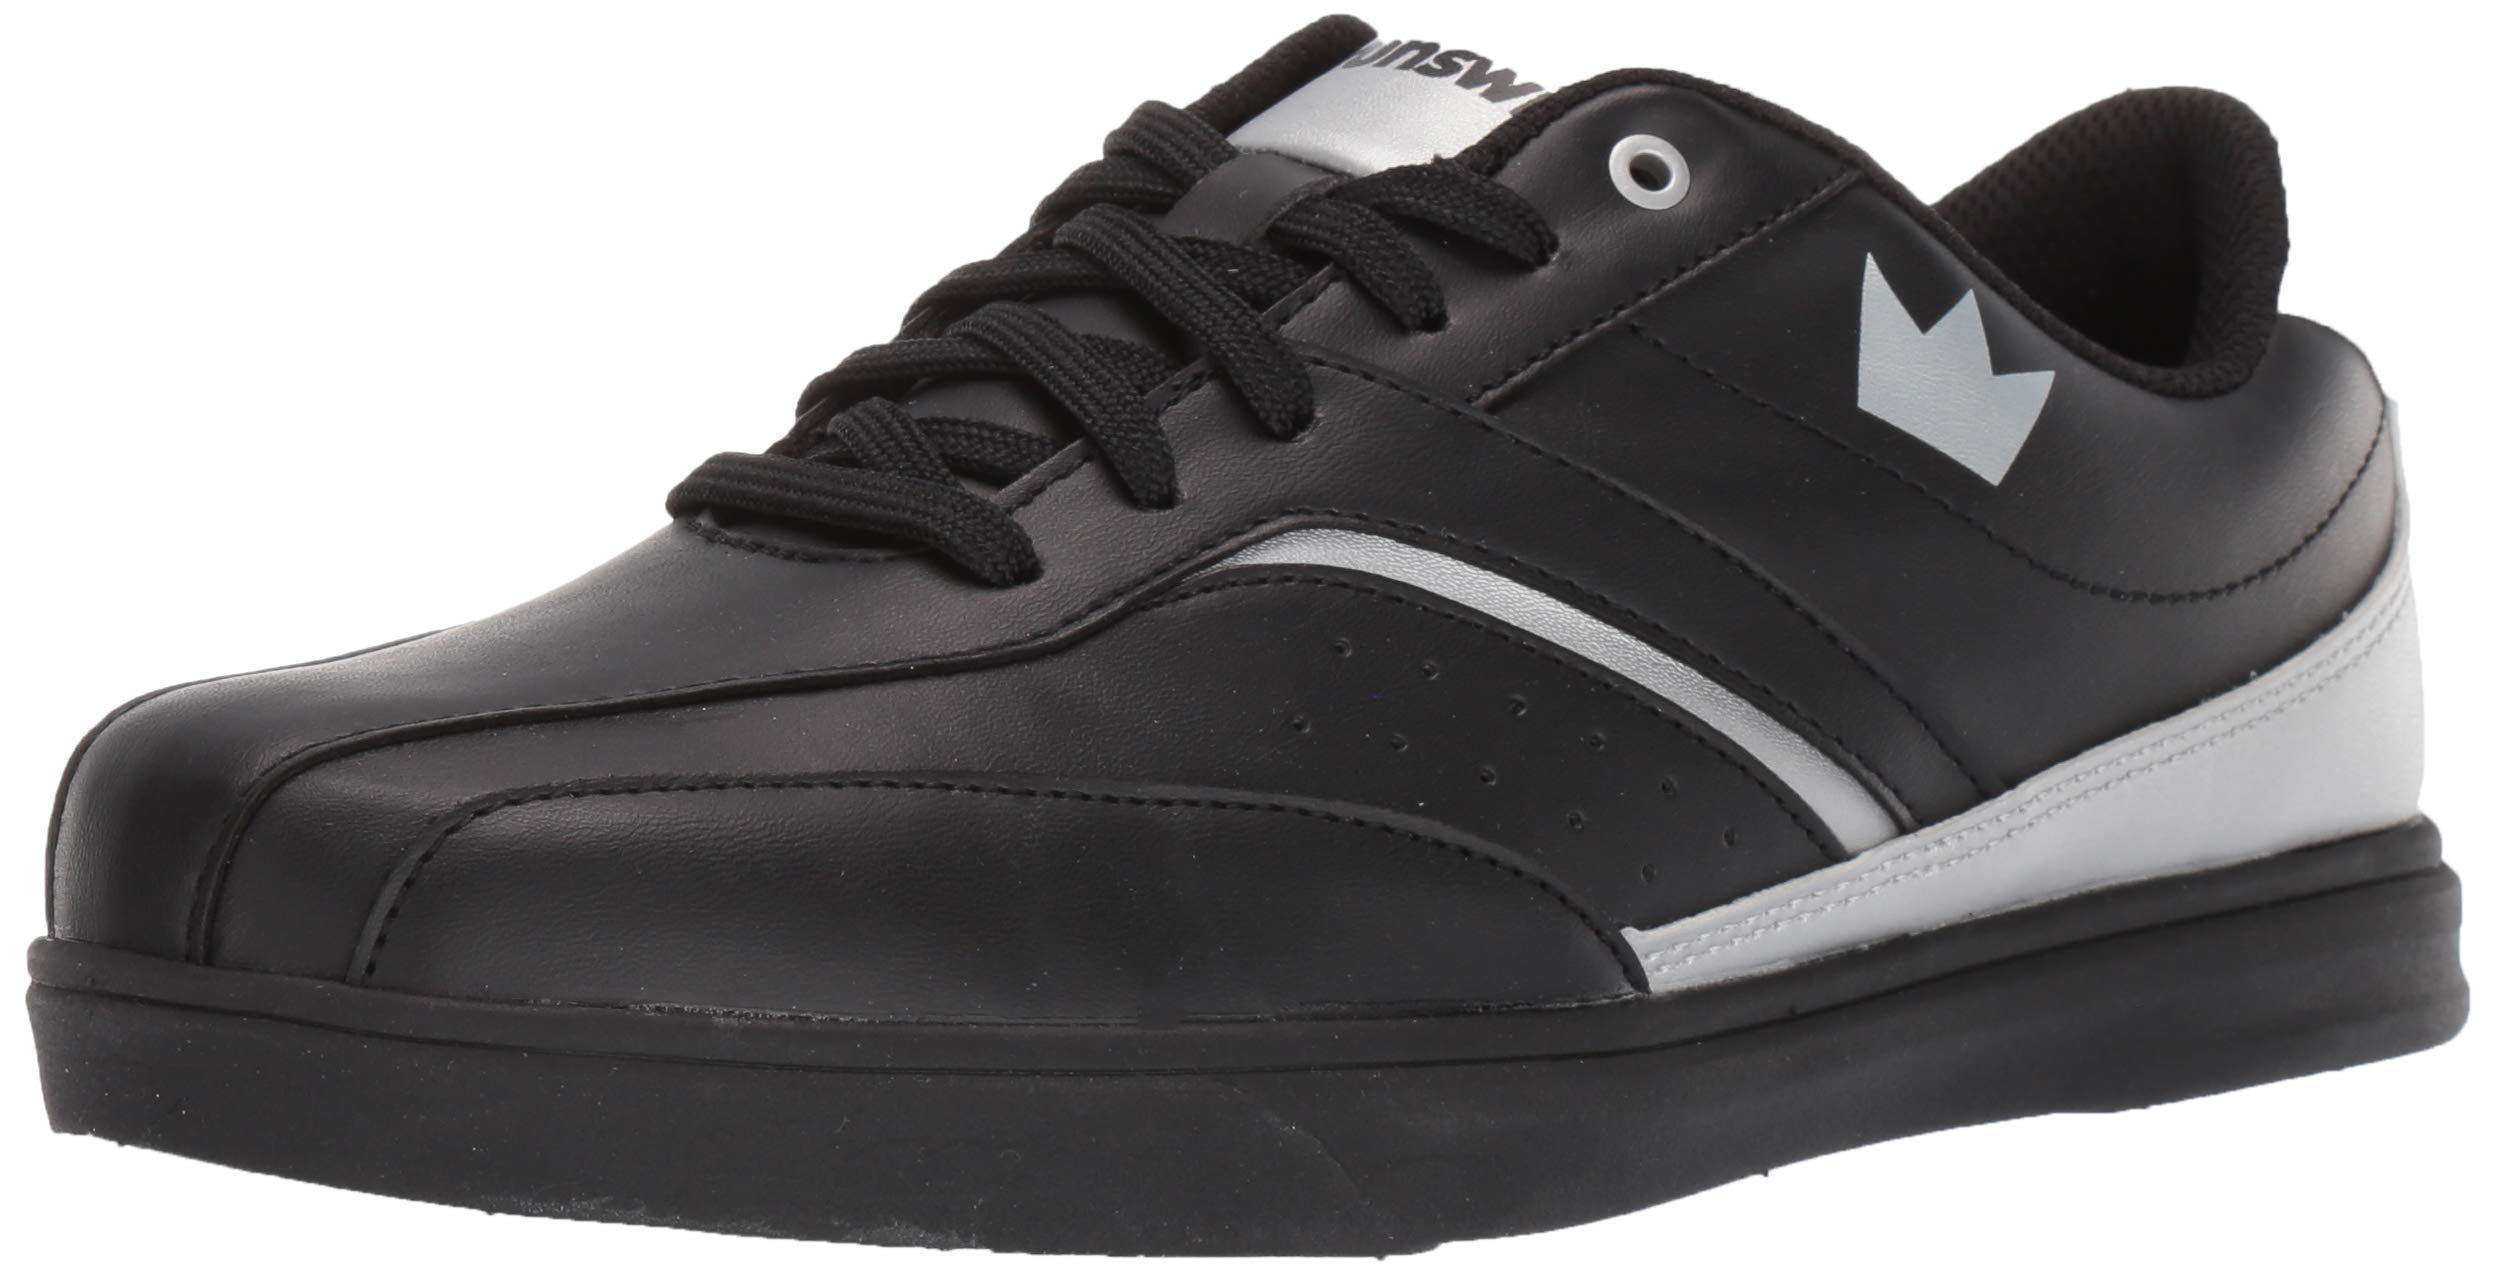 Brunswick Vapor Mens Bowling Shoe Black/Silver, 11.5 by Brunswick